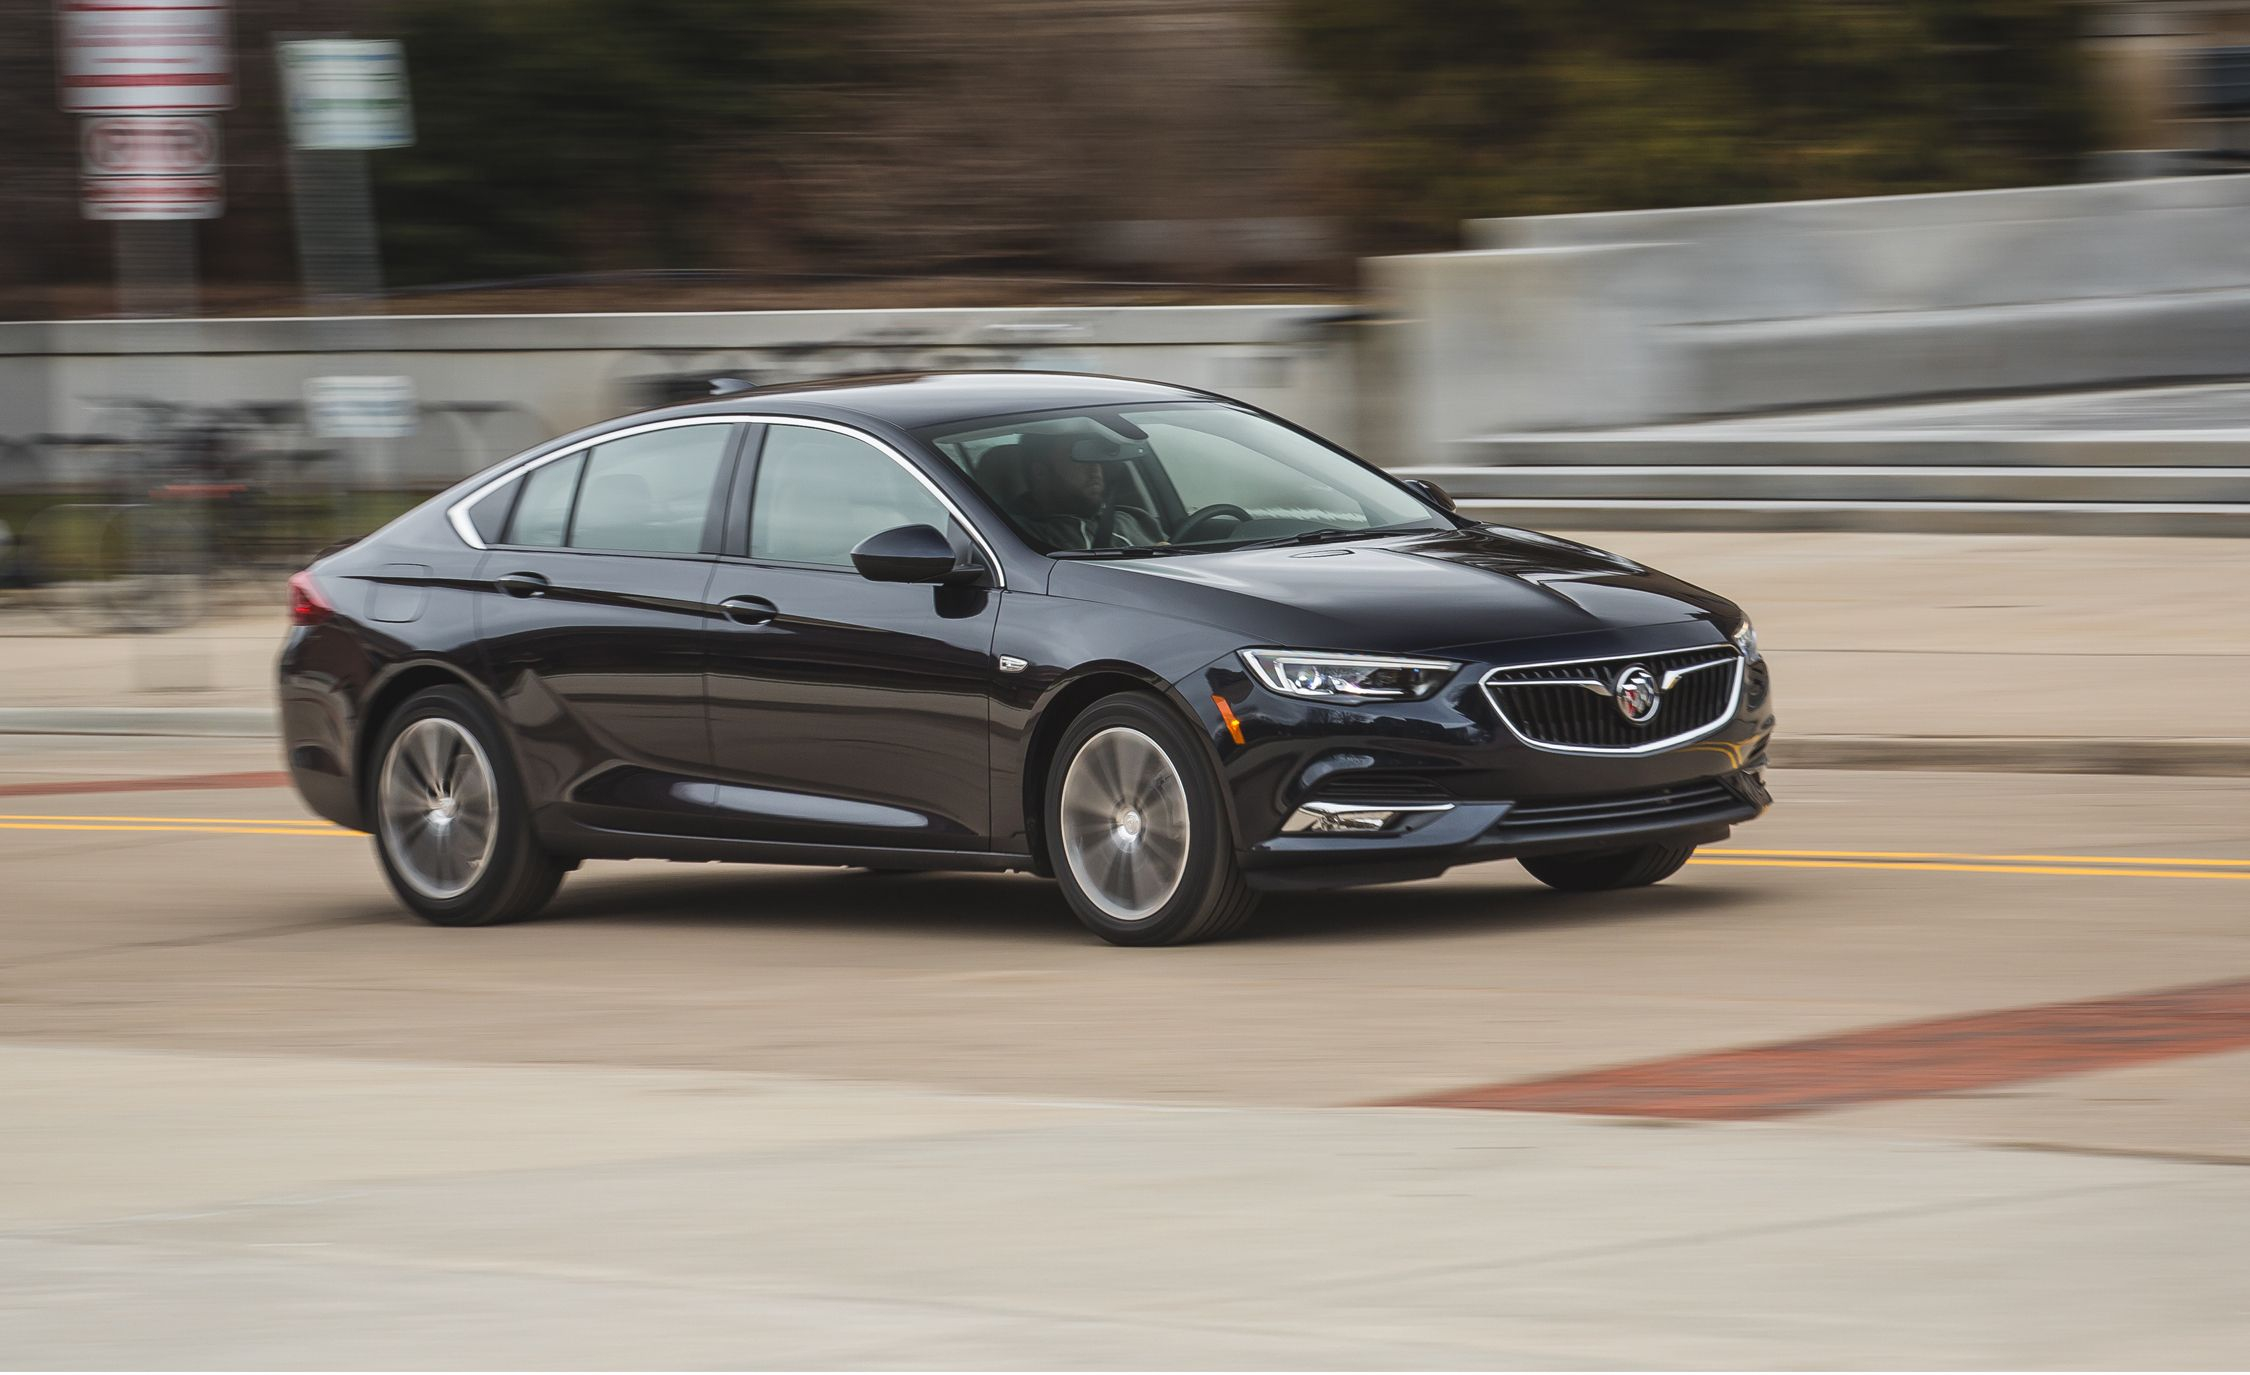 2018 Buick Regal Sportback Fwd Test | Review | Car And Driver New 2021 Buick Regal Sportback Specs, Used, 0-60